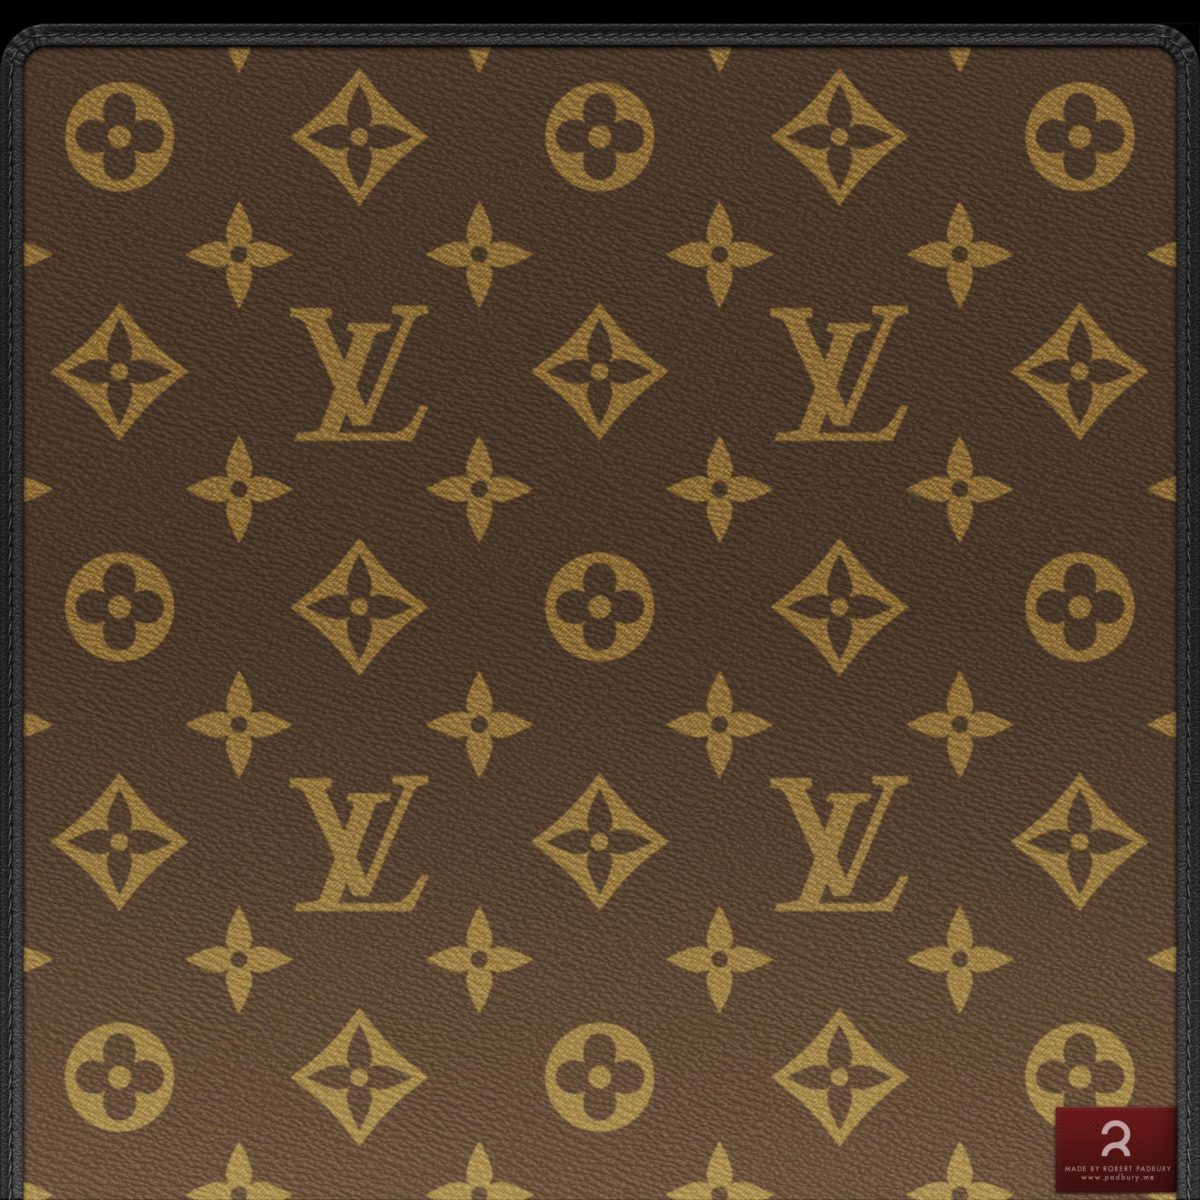 Dribbble – Louis Vuitton Retina Display Wallpaper Collection by …